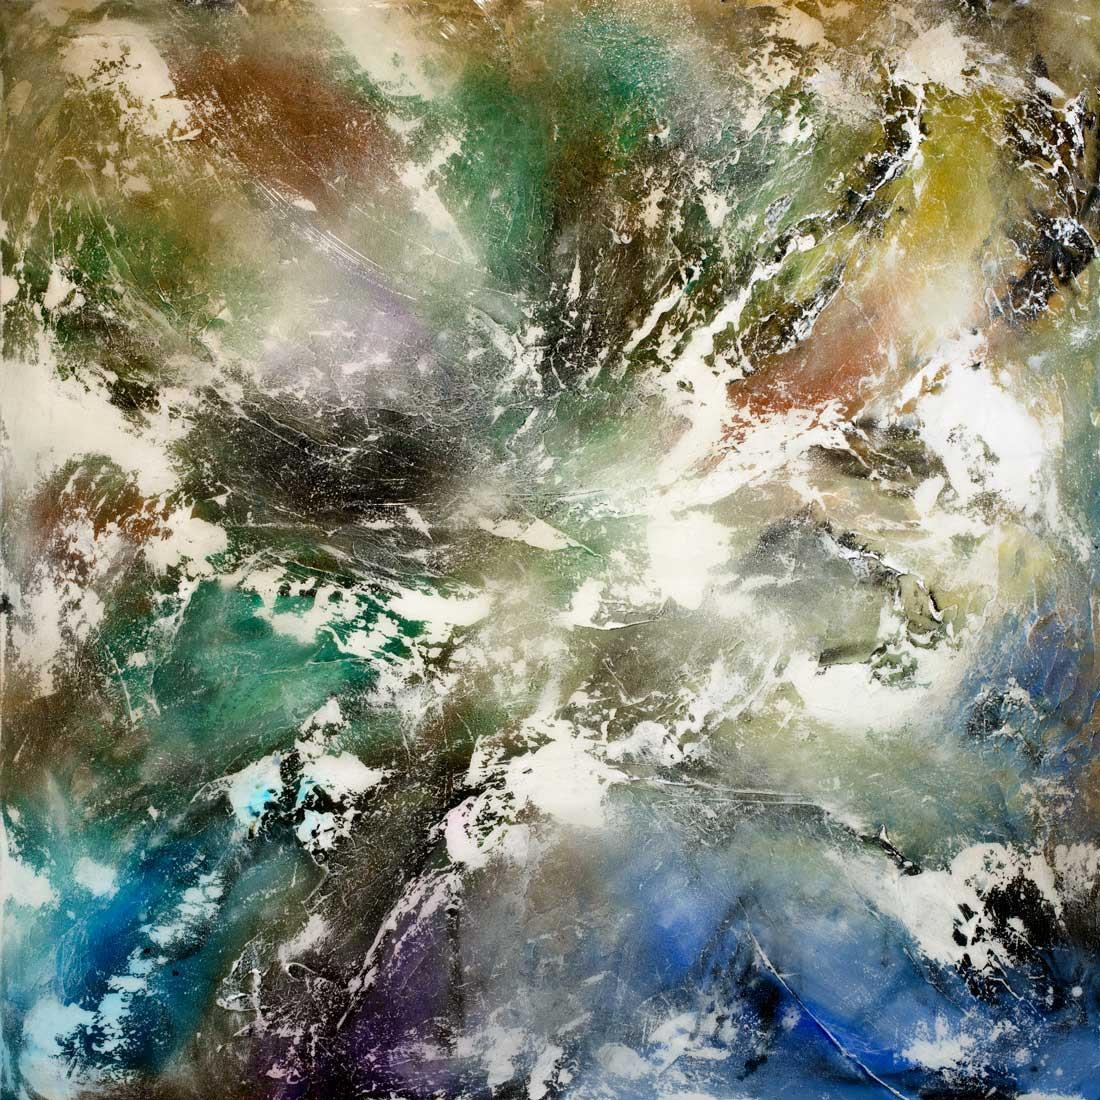 Atmosphere II - Original Robin Eckardt